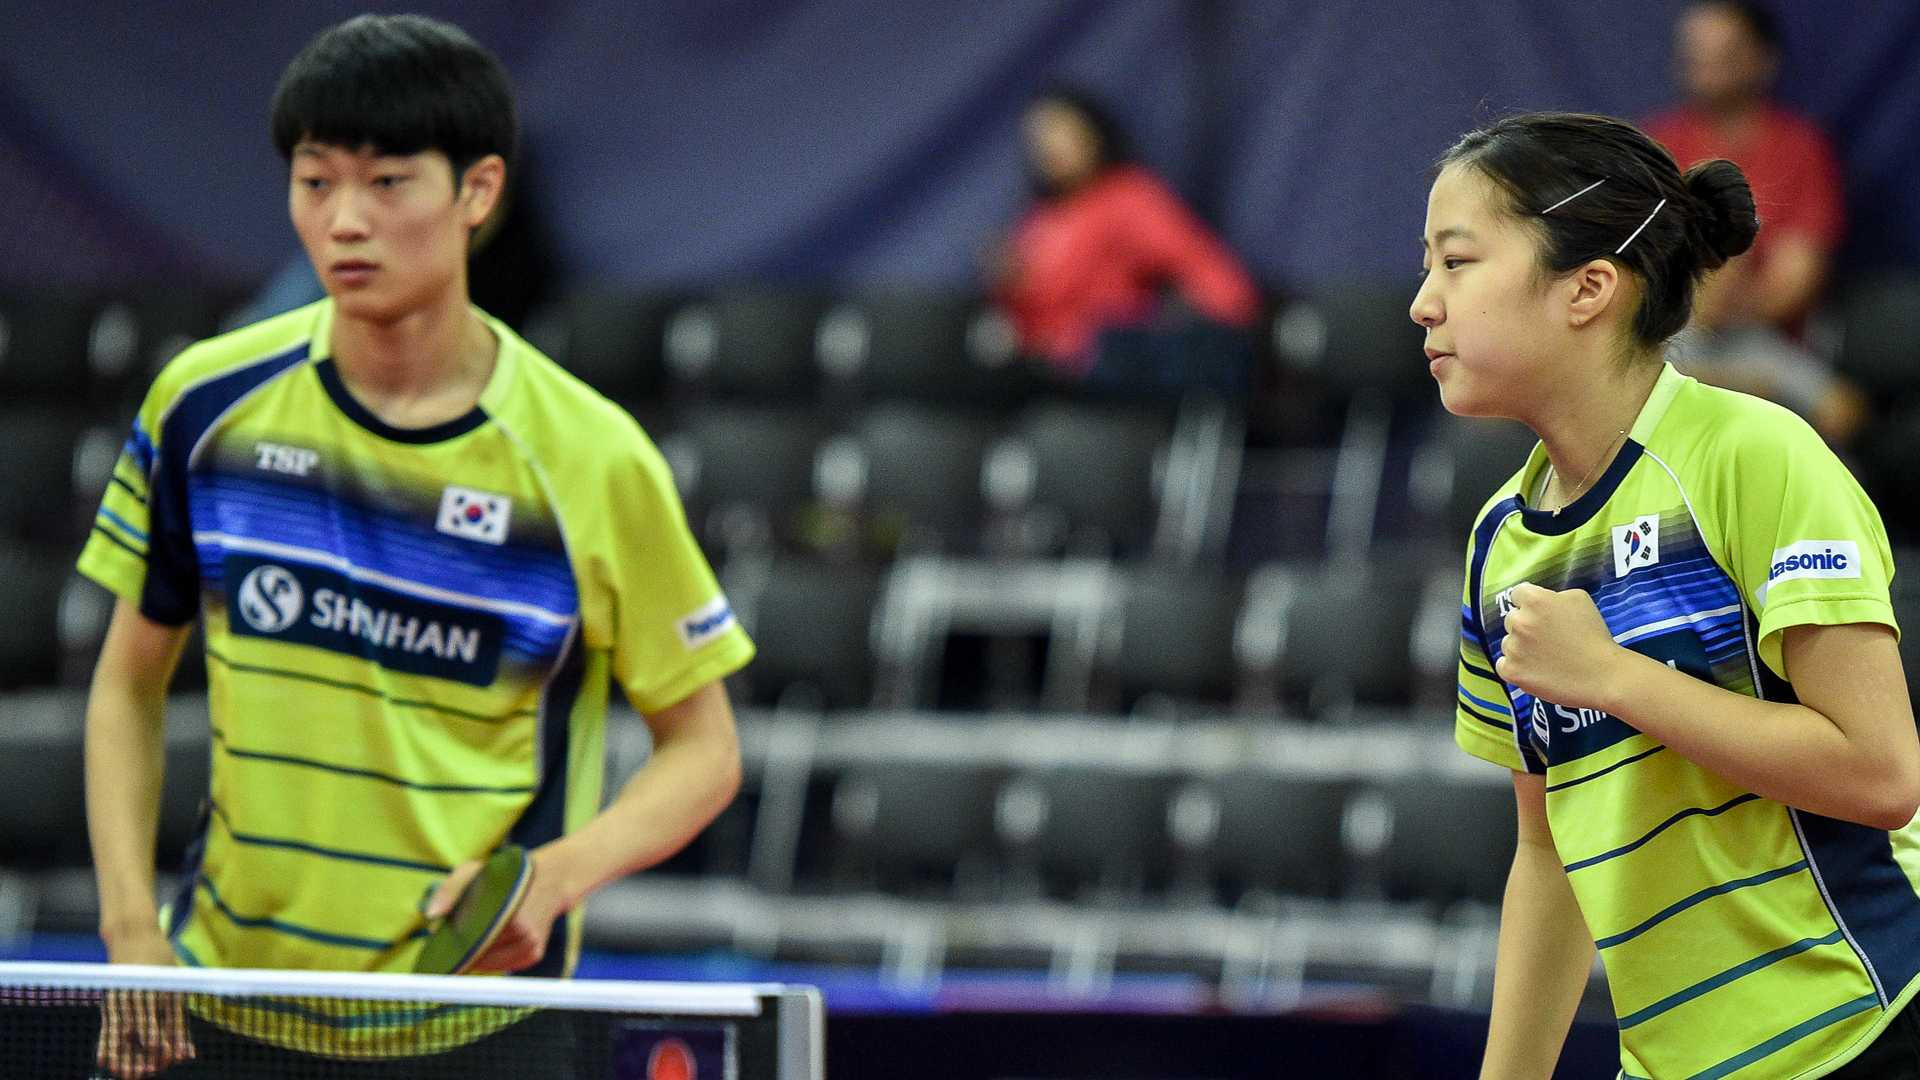 South Korean qualifiers win mixed doubles title at ITTF Czech Open